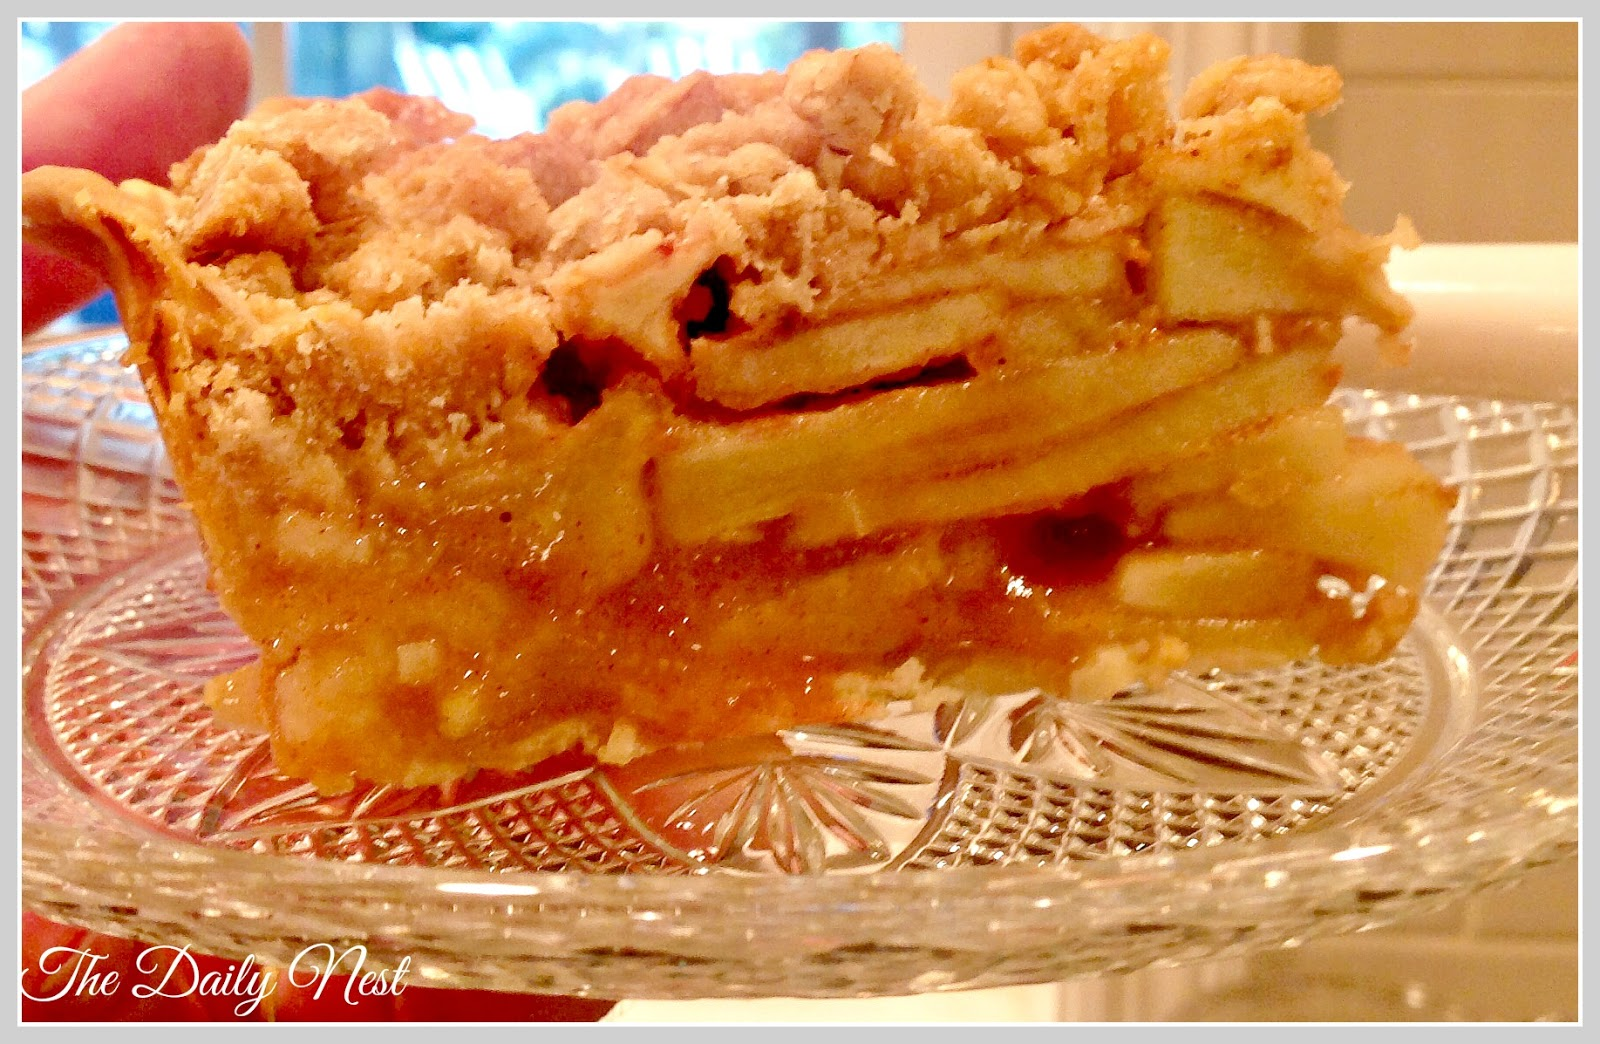 Mike's Favorite Dutch Apple Pie With Oatmeal Streusel Topping